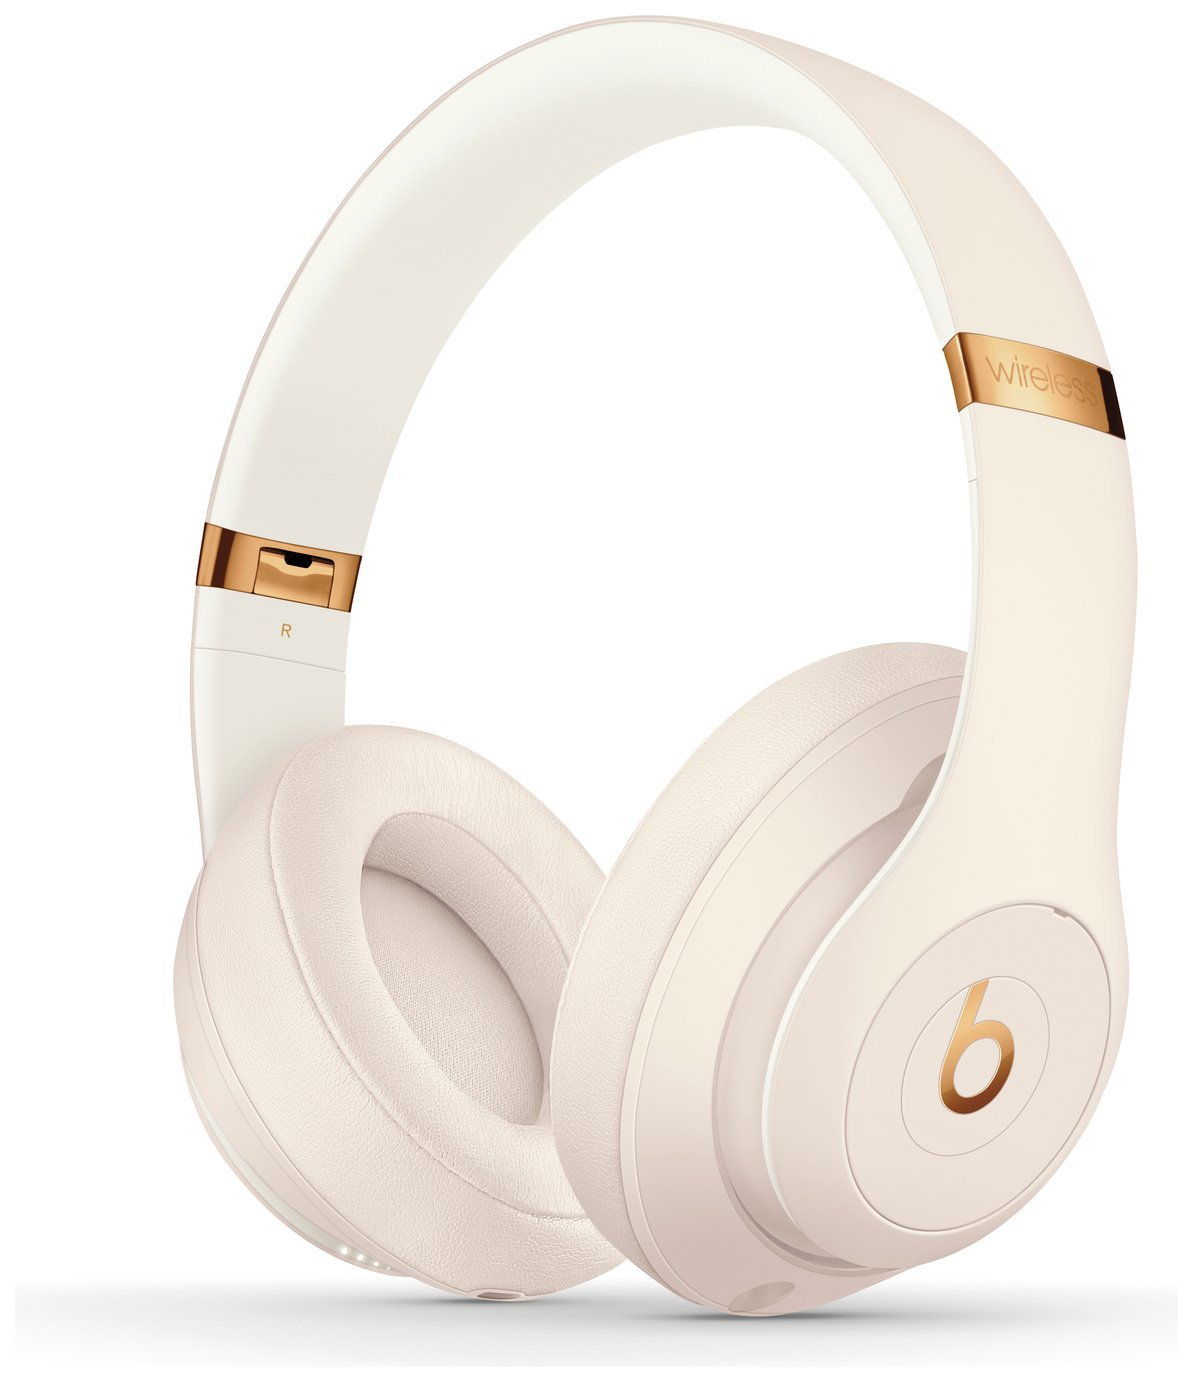 Image of Beats by Dre Studio 3 Wireless Over-Ear Headphones Rose Gold